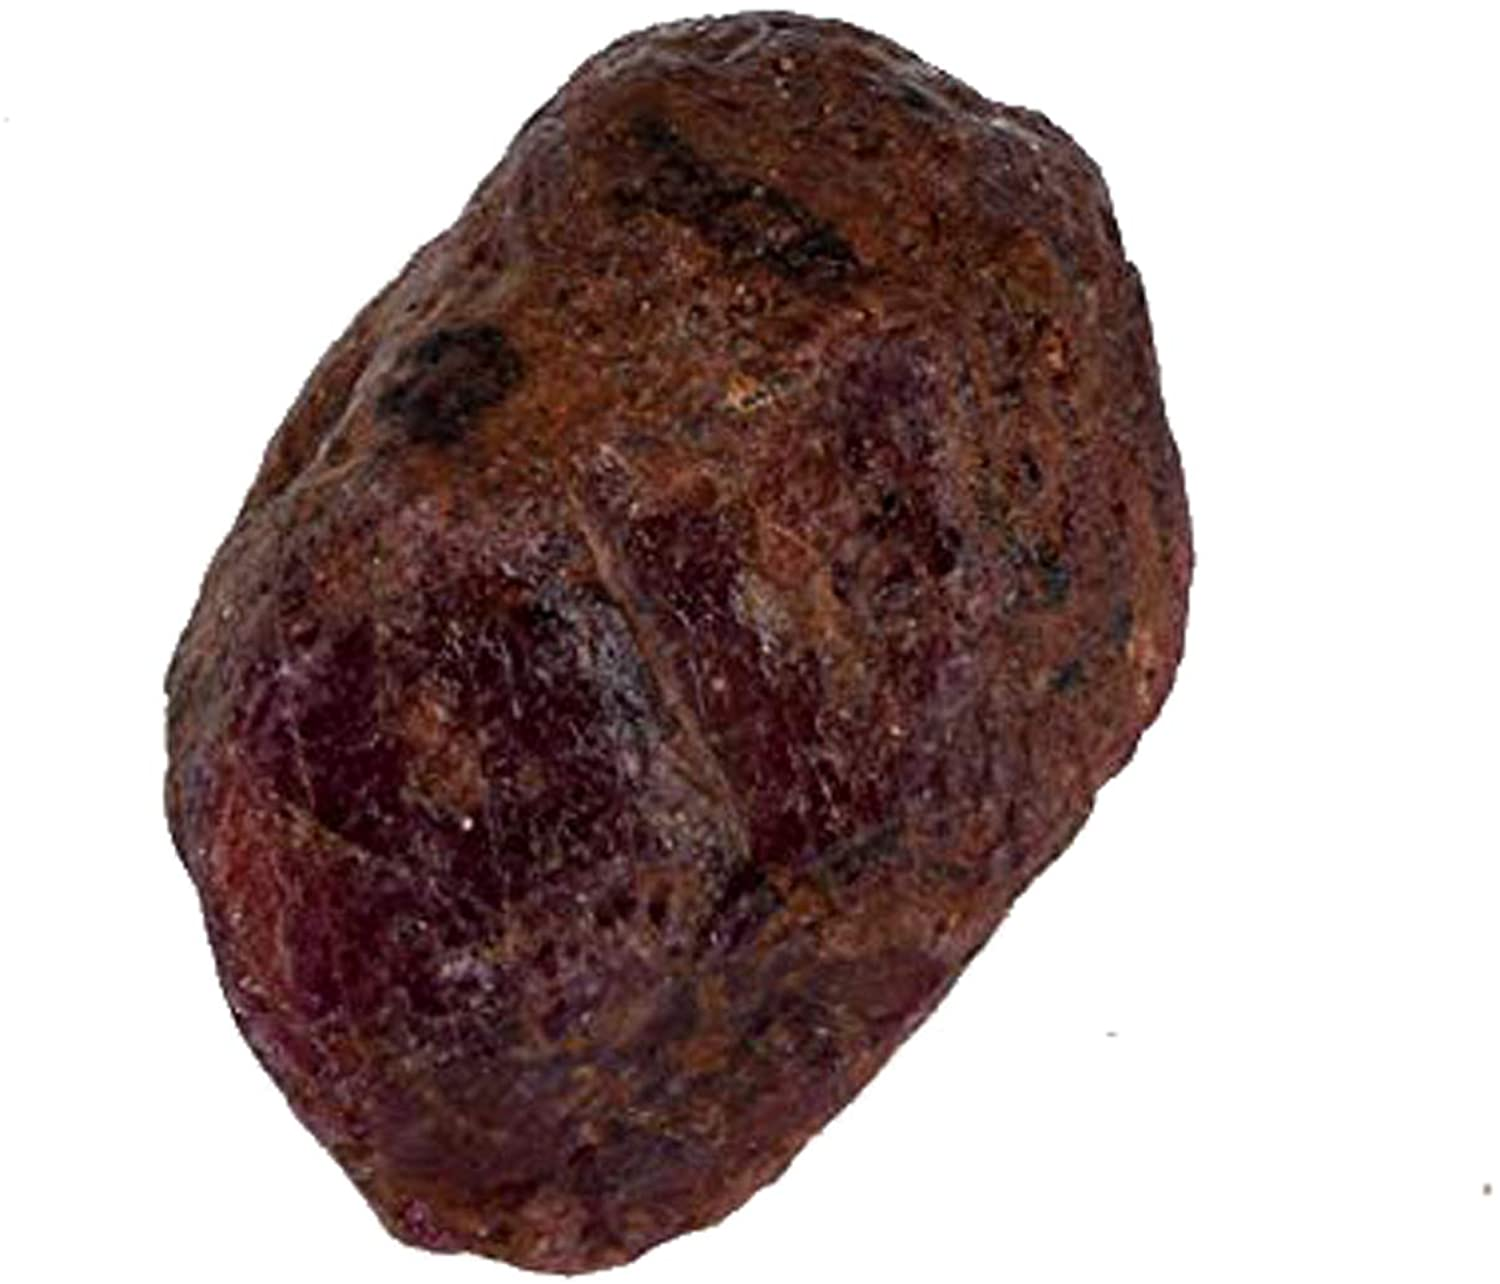 Best Price !!!137.5 Ct Unheated Star Ruby Rough 100% Natural Loose Gemstone V-3605